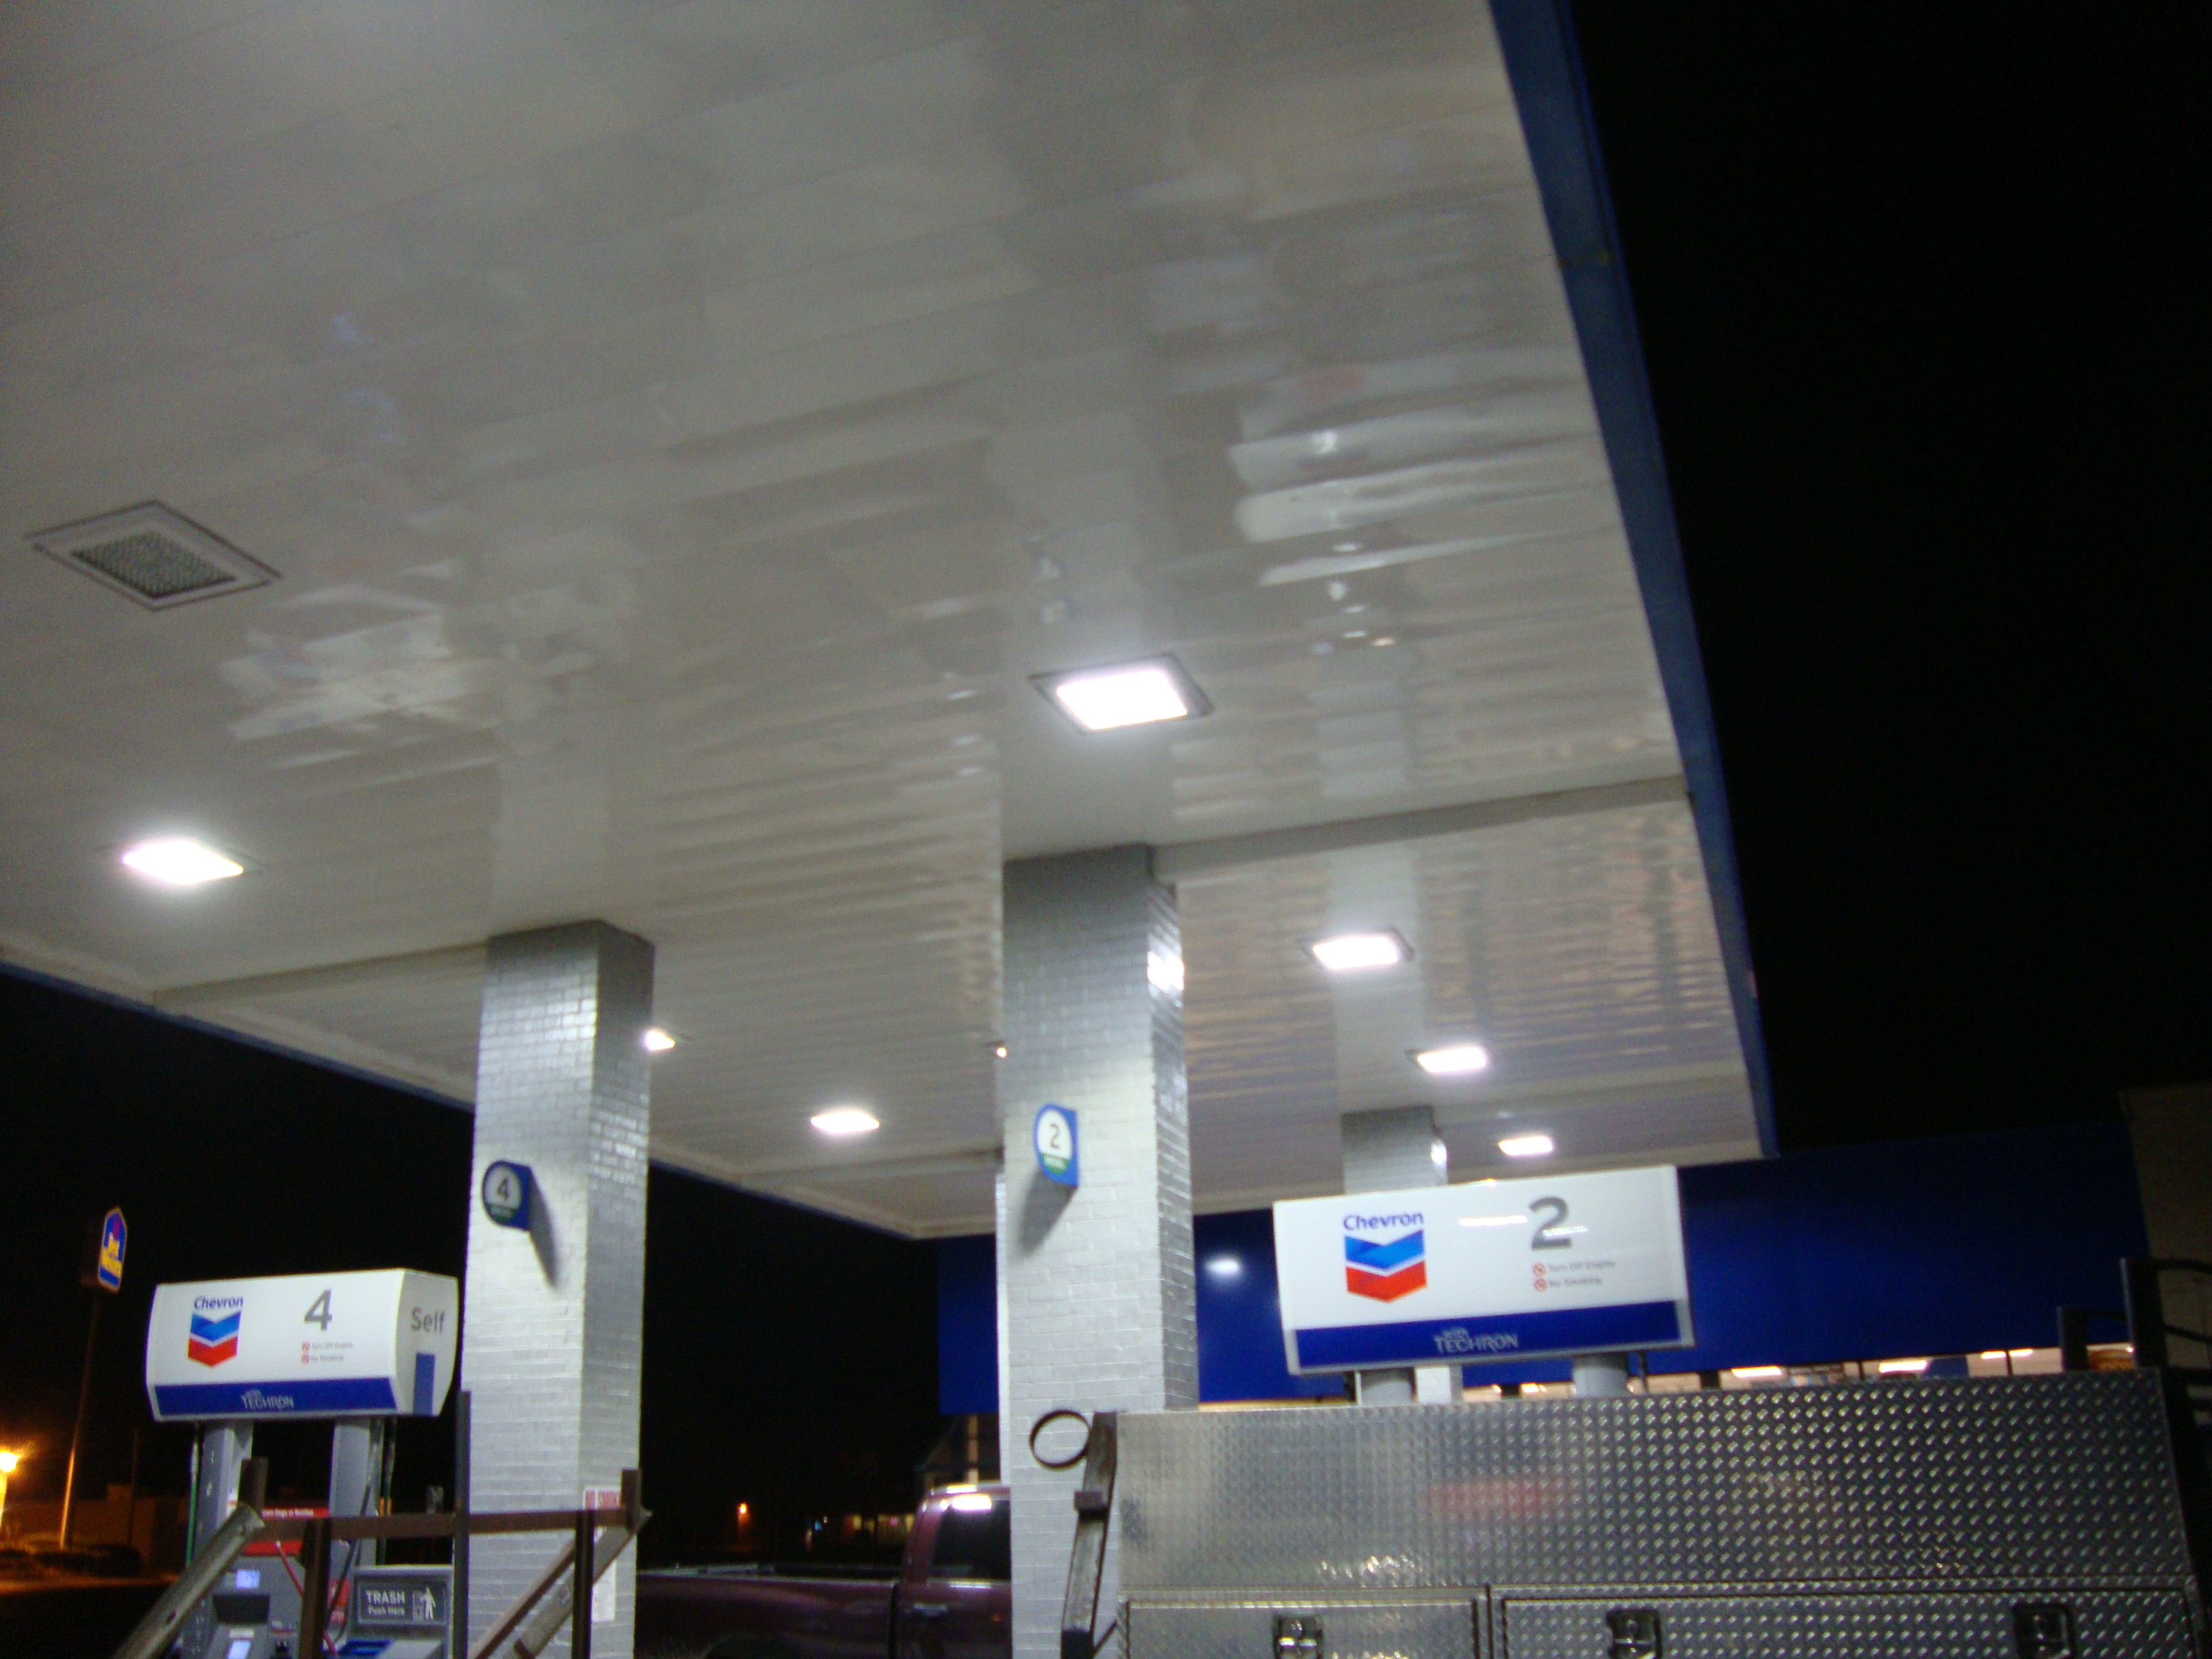 chevron gas station at night